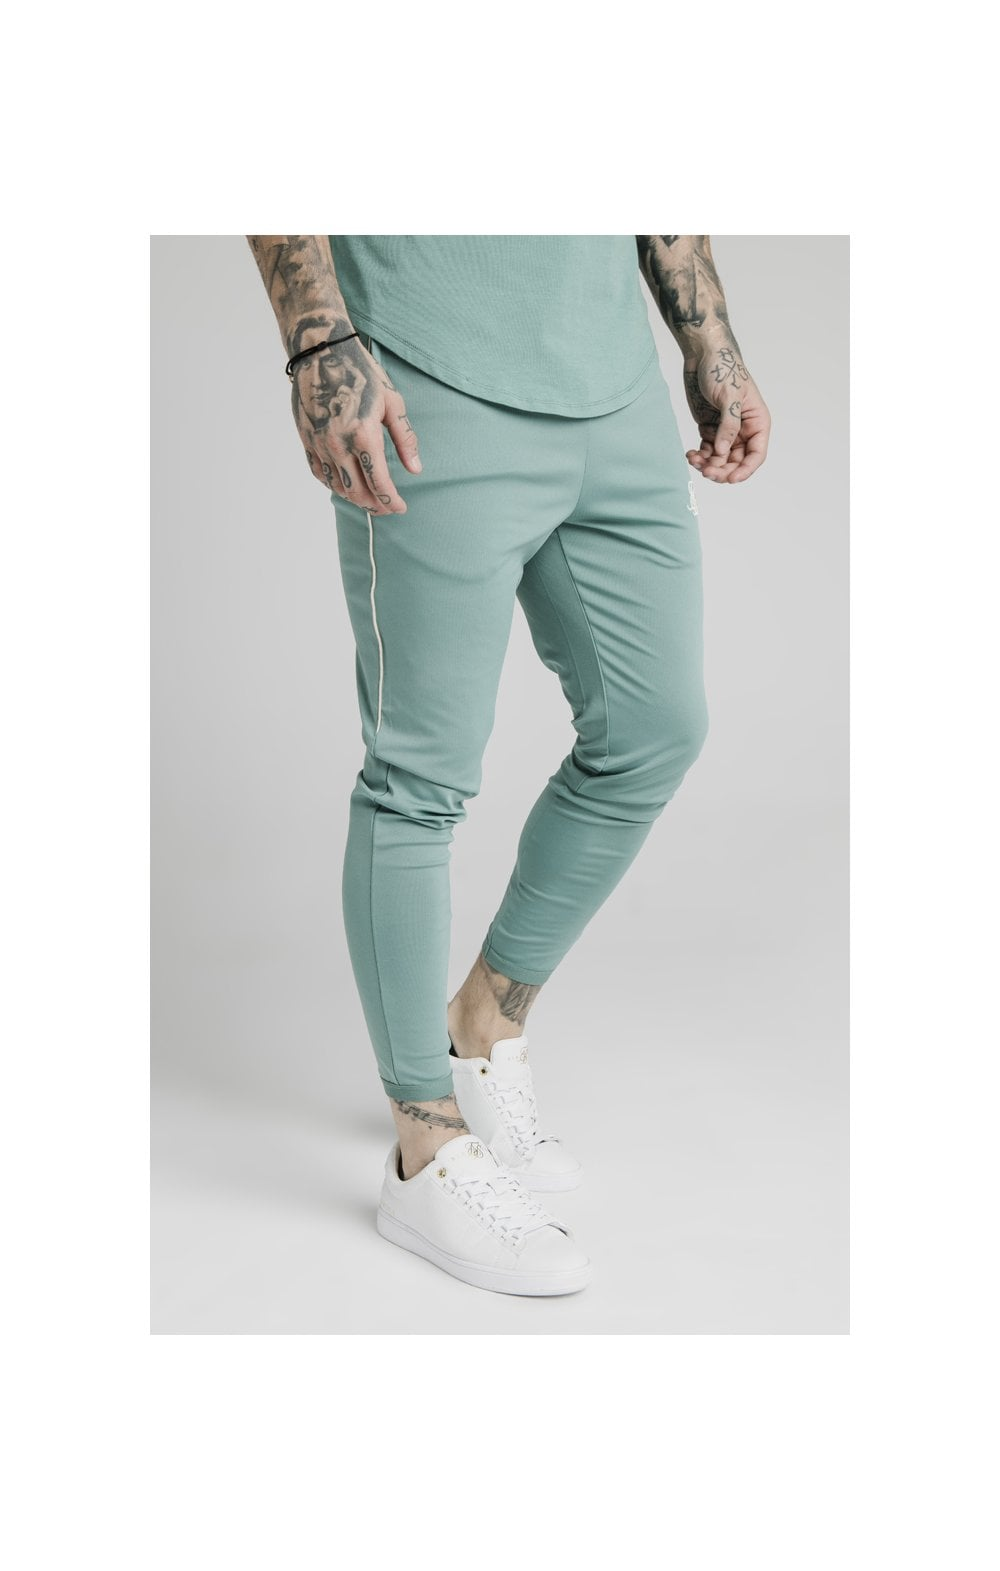 Load image into Gallery viewer, SikSilk Scope Track Pants - Light Petrol Blue (1)